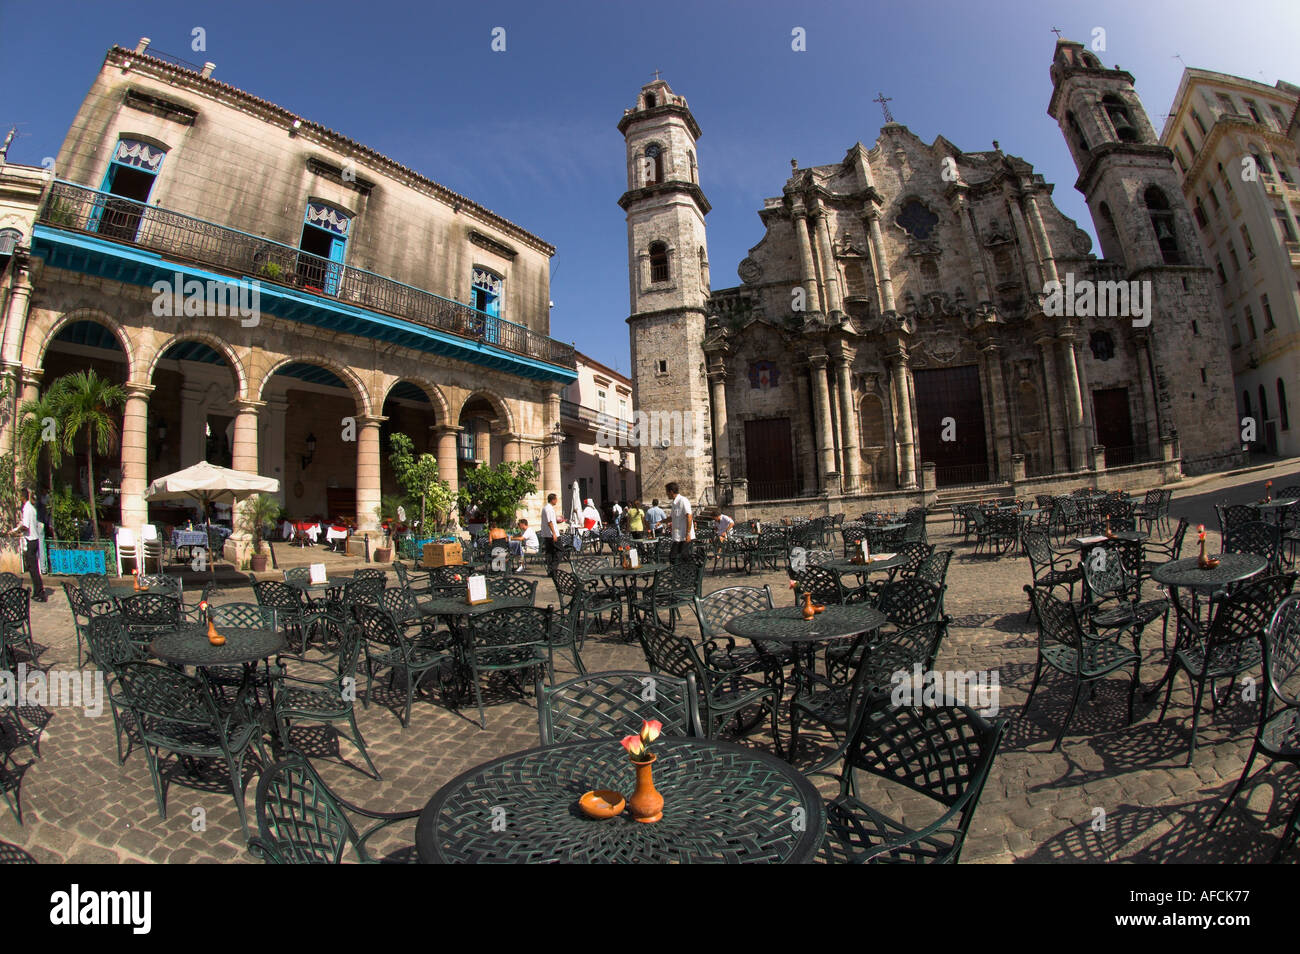 Cuba Havana Plaza De La Catedral Wide View With El Patio Cafe Terrace And  San Cristobal Cathedral